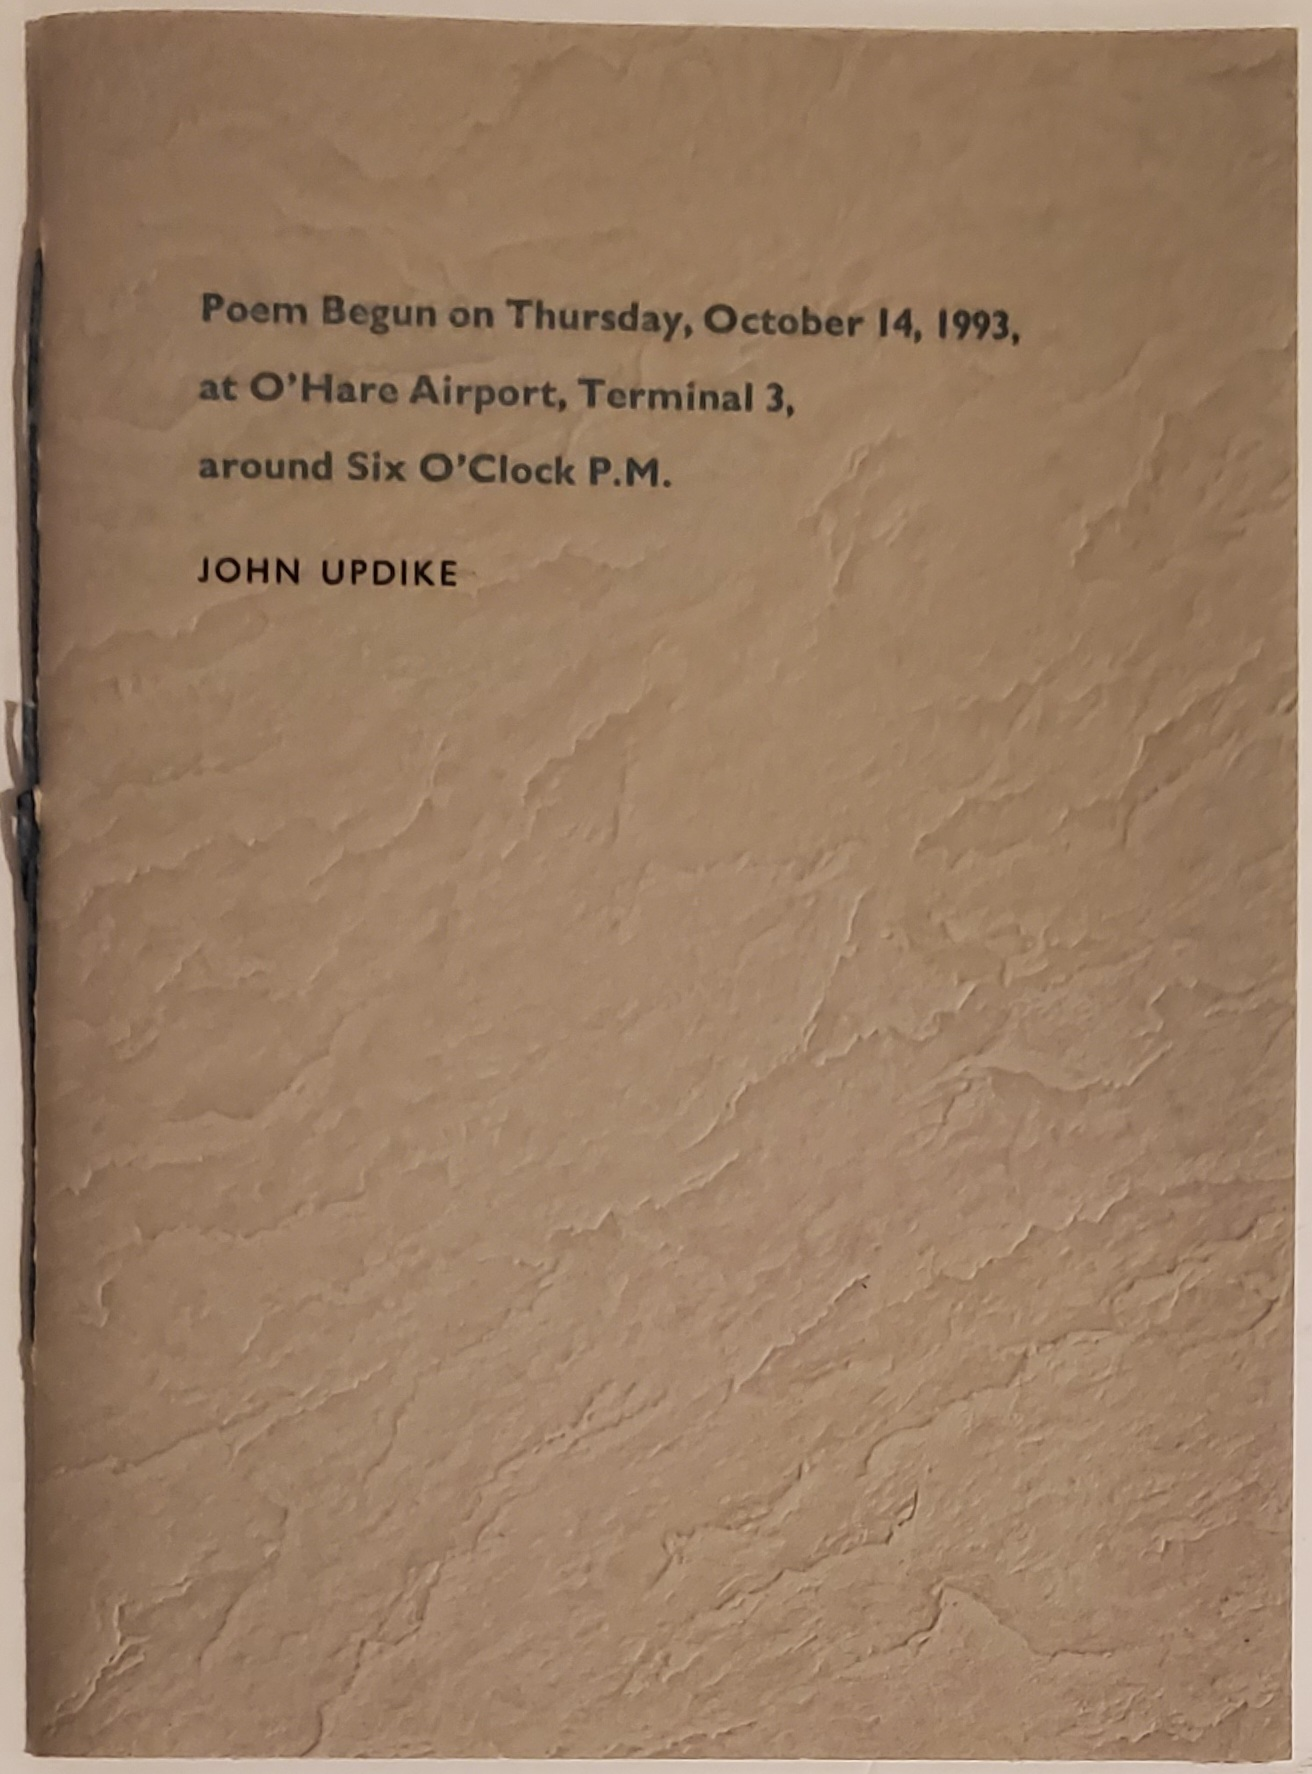 POEM BEGUN ON THURSDAY, OCTOBER 14, 1993, AT O'HARE AIRPORT, TERMINAL 3, AROUND SIX O'CLOCK P.M. John Updike.